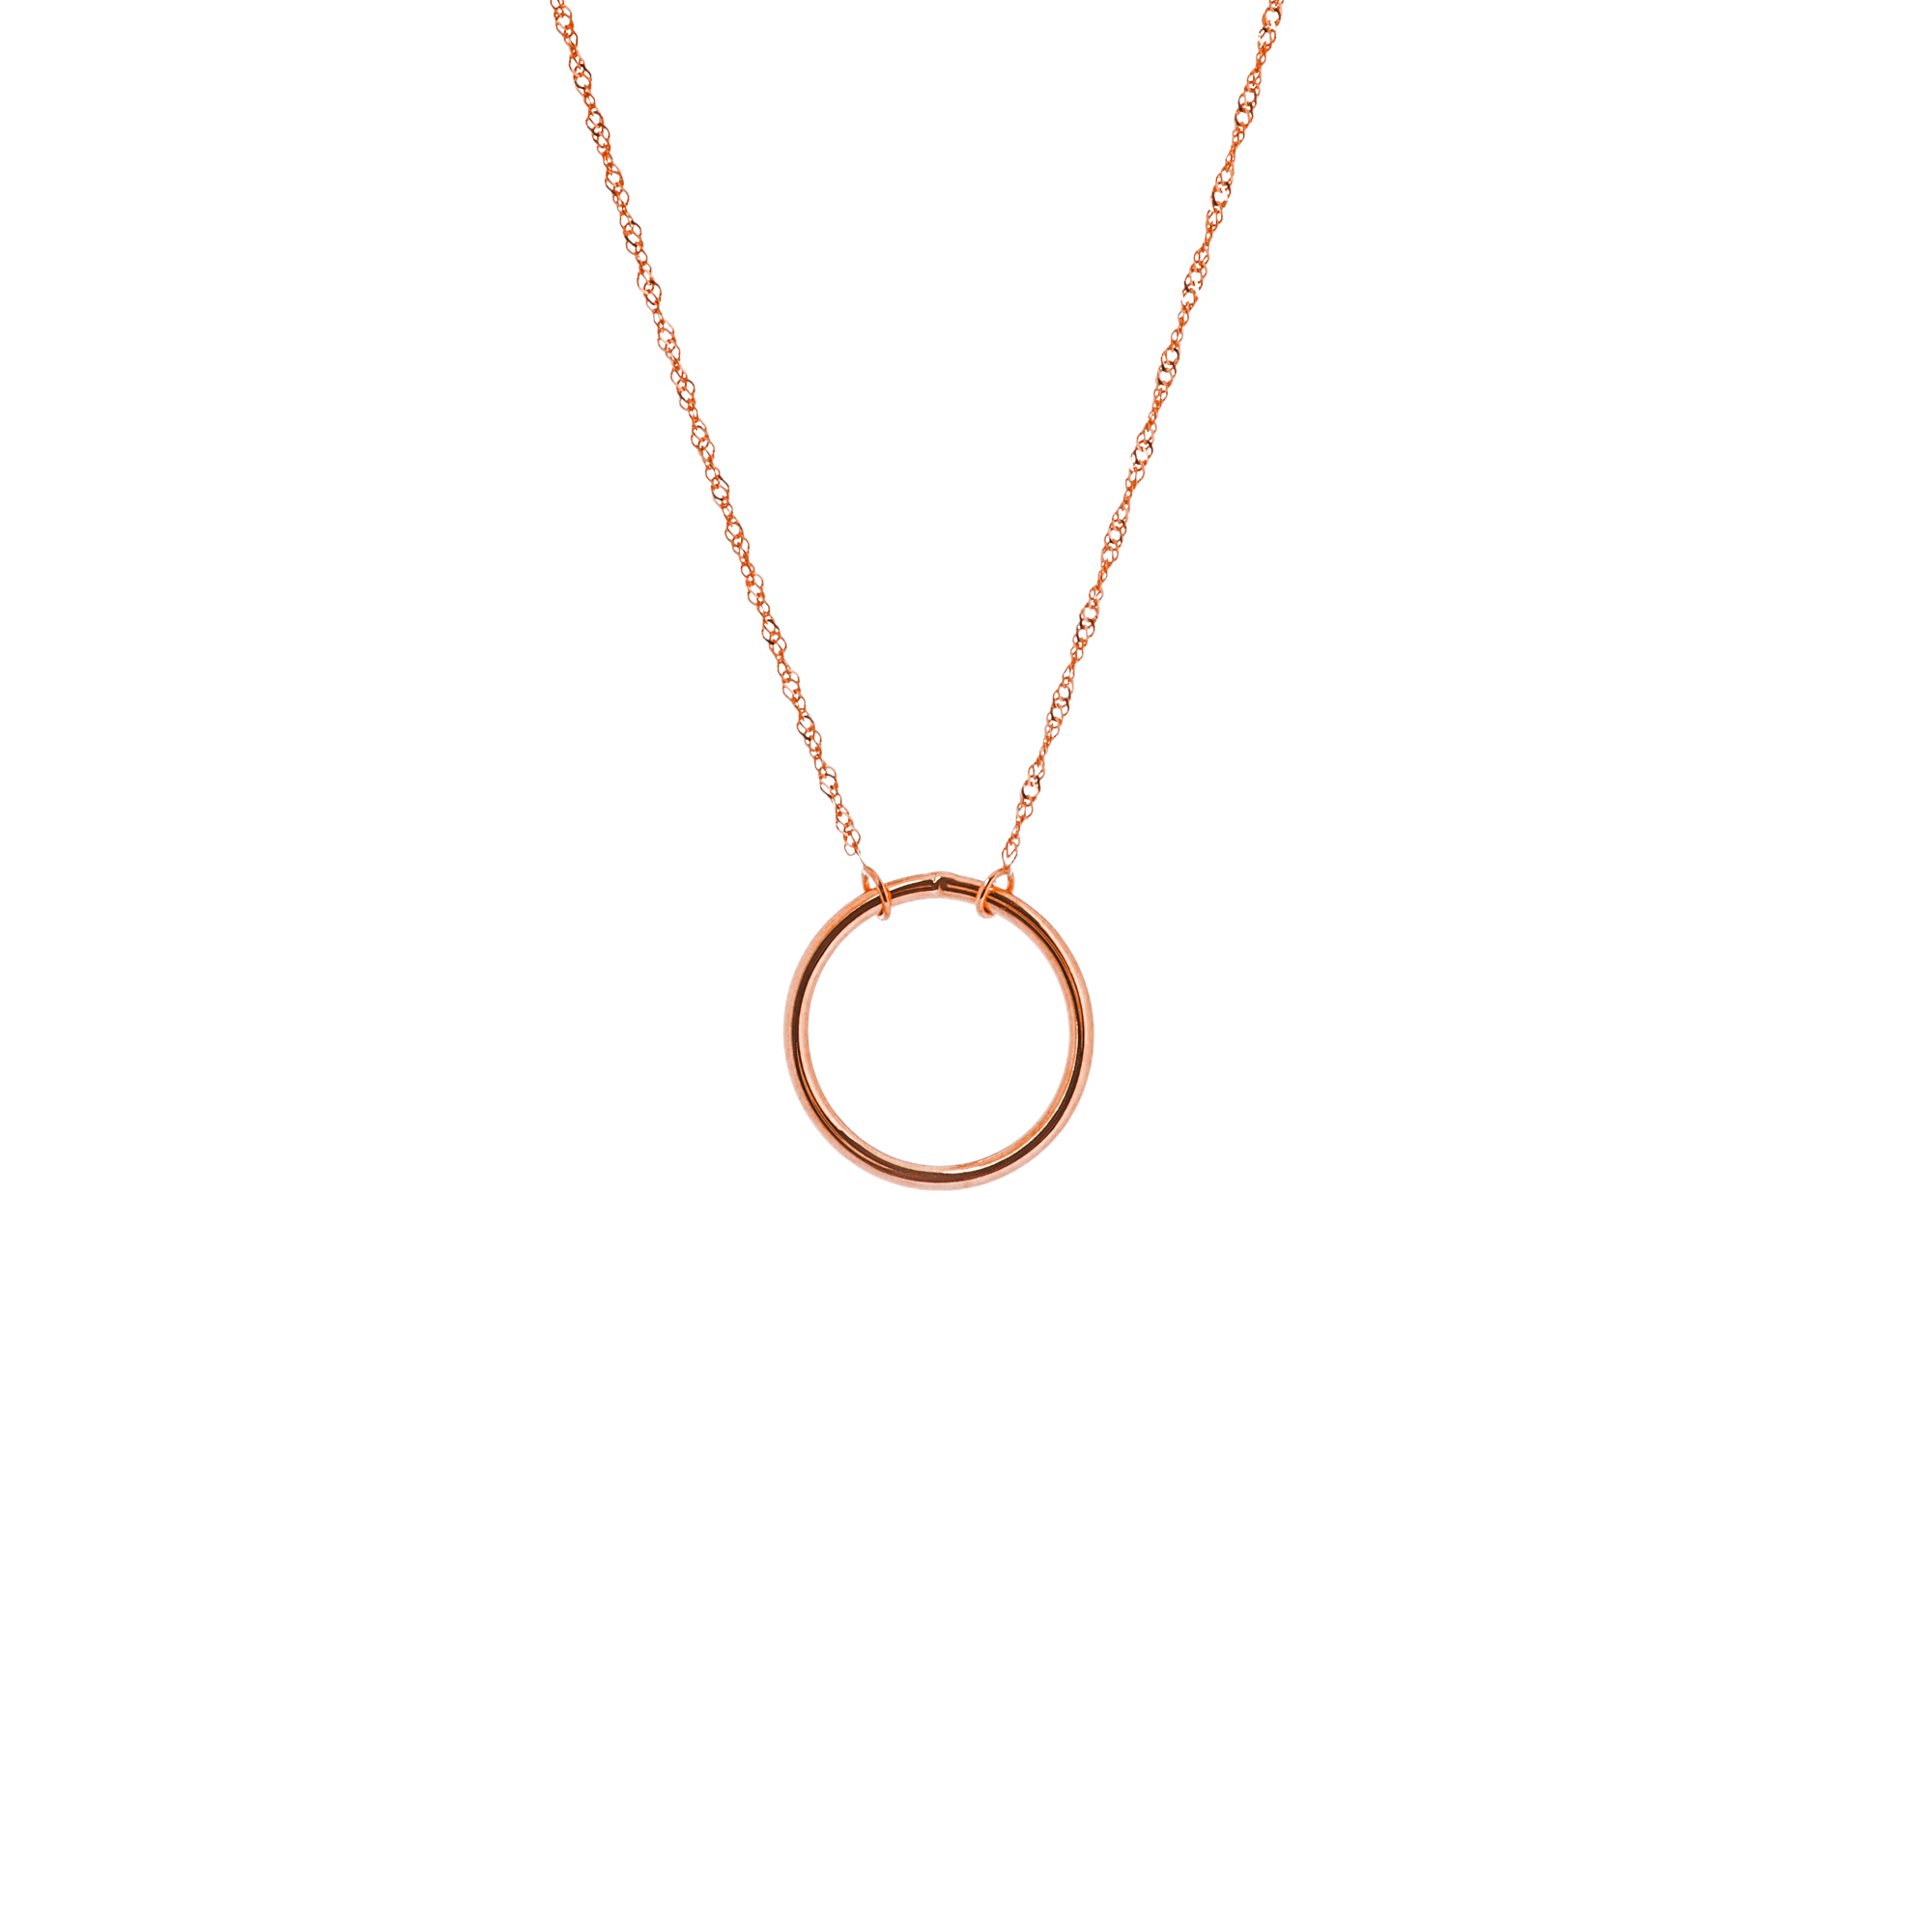 Circle Necklace, 14Kt Gold Circle Necklace 18